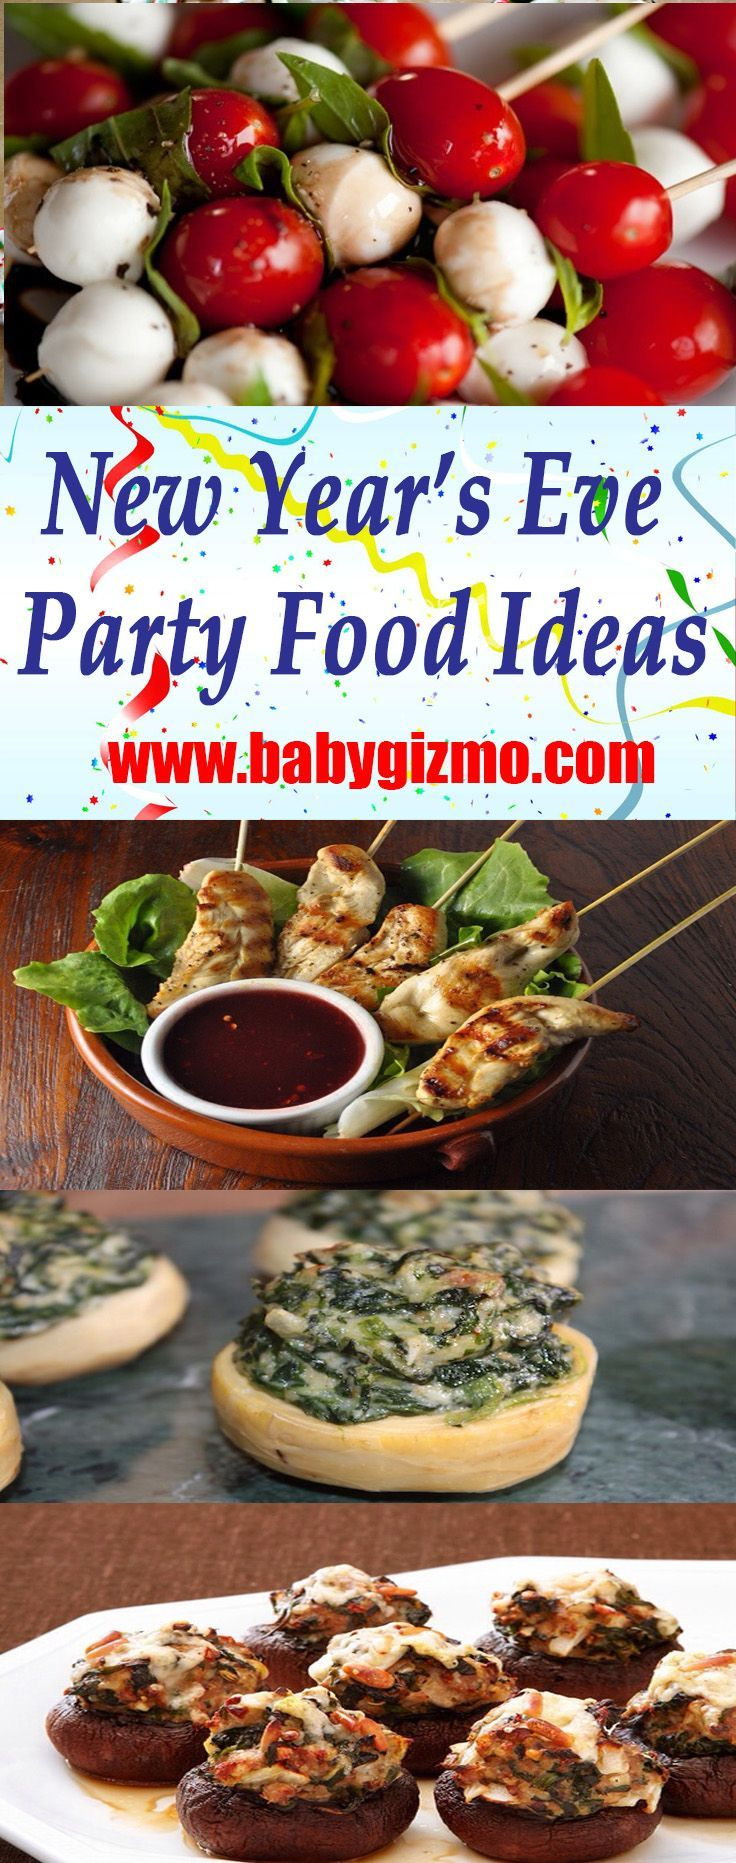 Fabulous Finger Foods For New Year's Eve Parties New